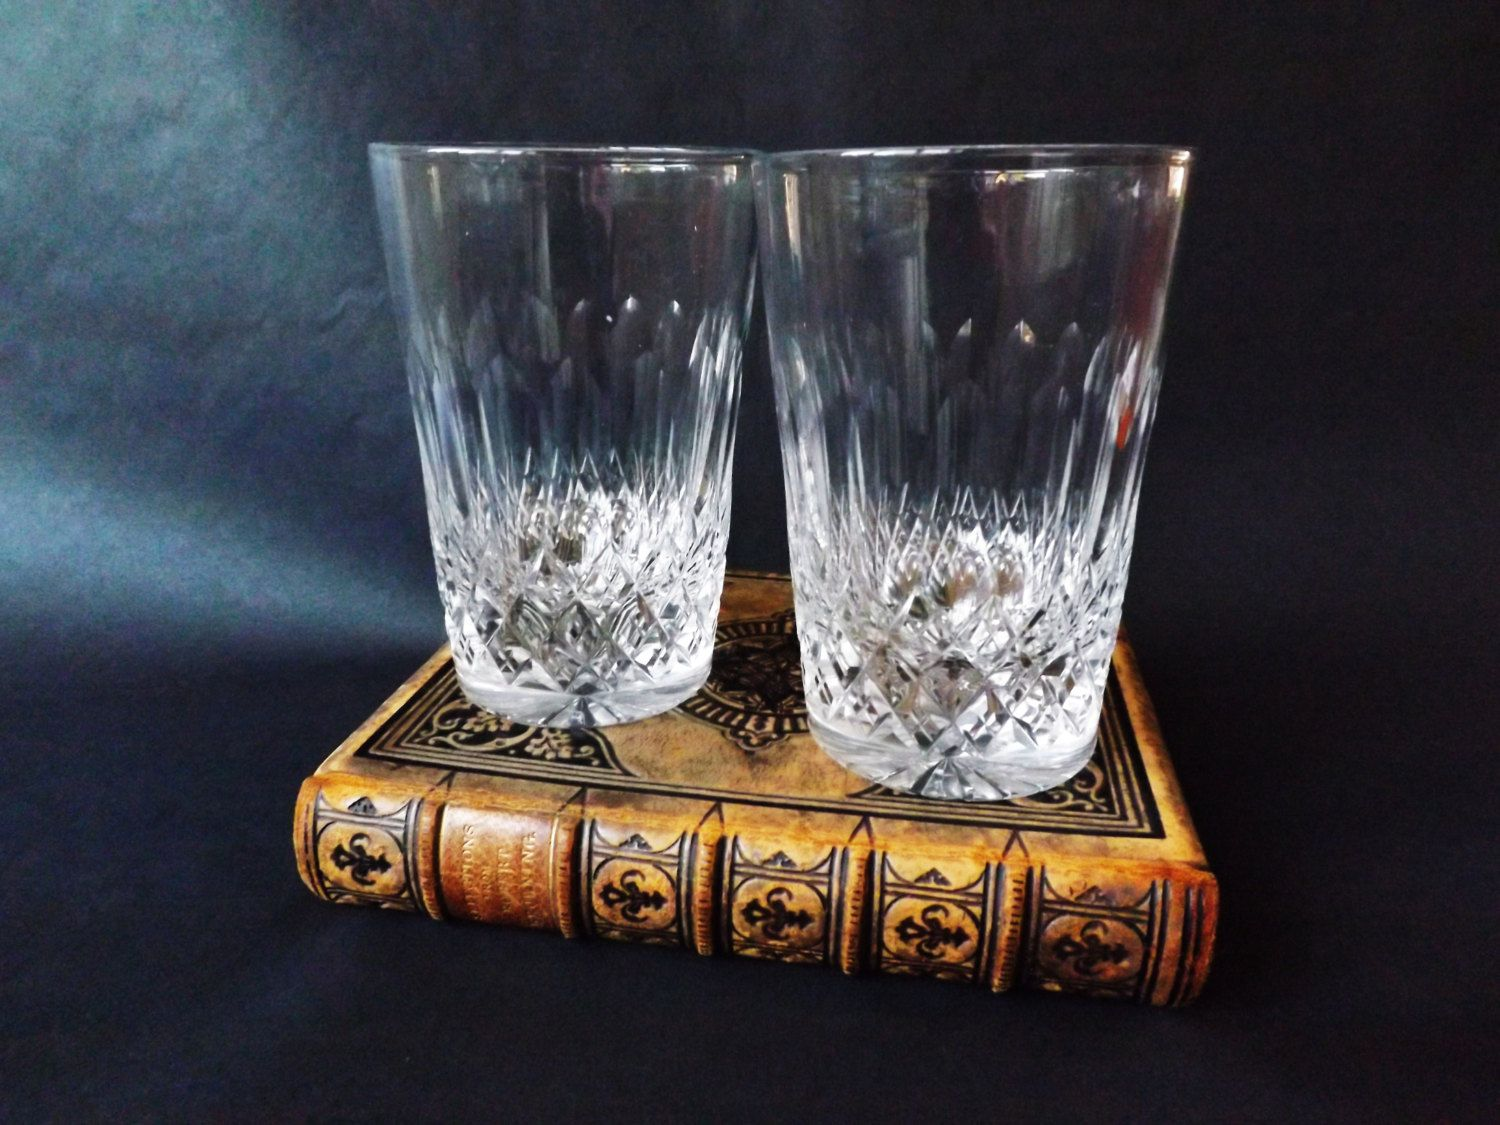 Antique Whisky Glasses In Cut Crystal, 2 English Whiskey Tumblers, Scotch  Glass, Barware, Man Cave Gift, Home Bar Glassware